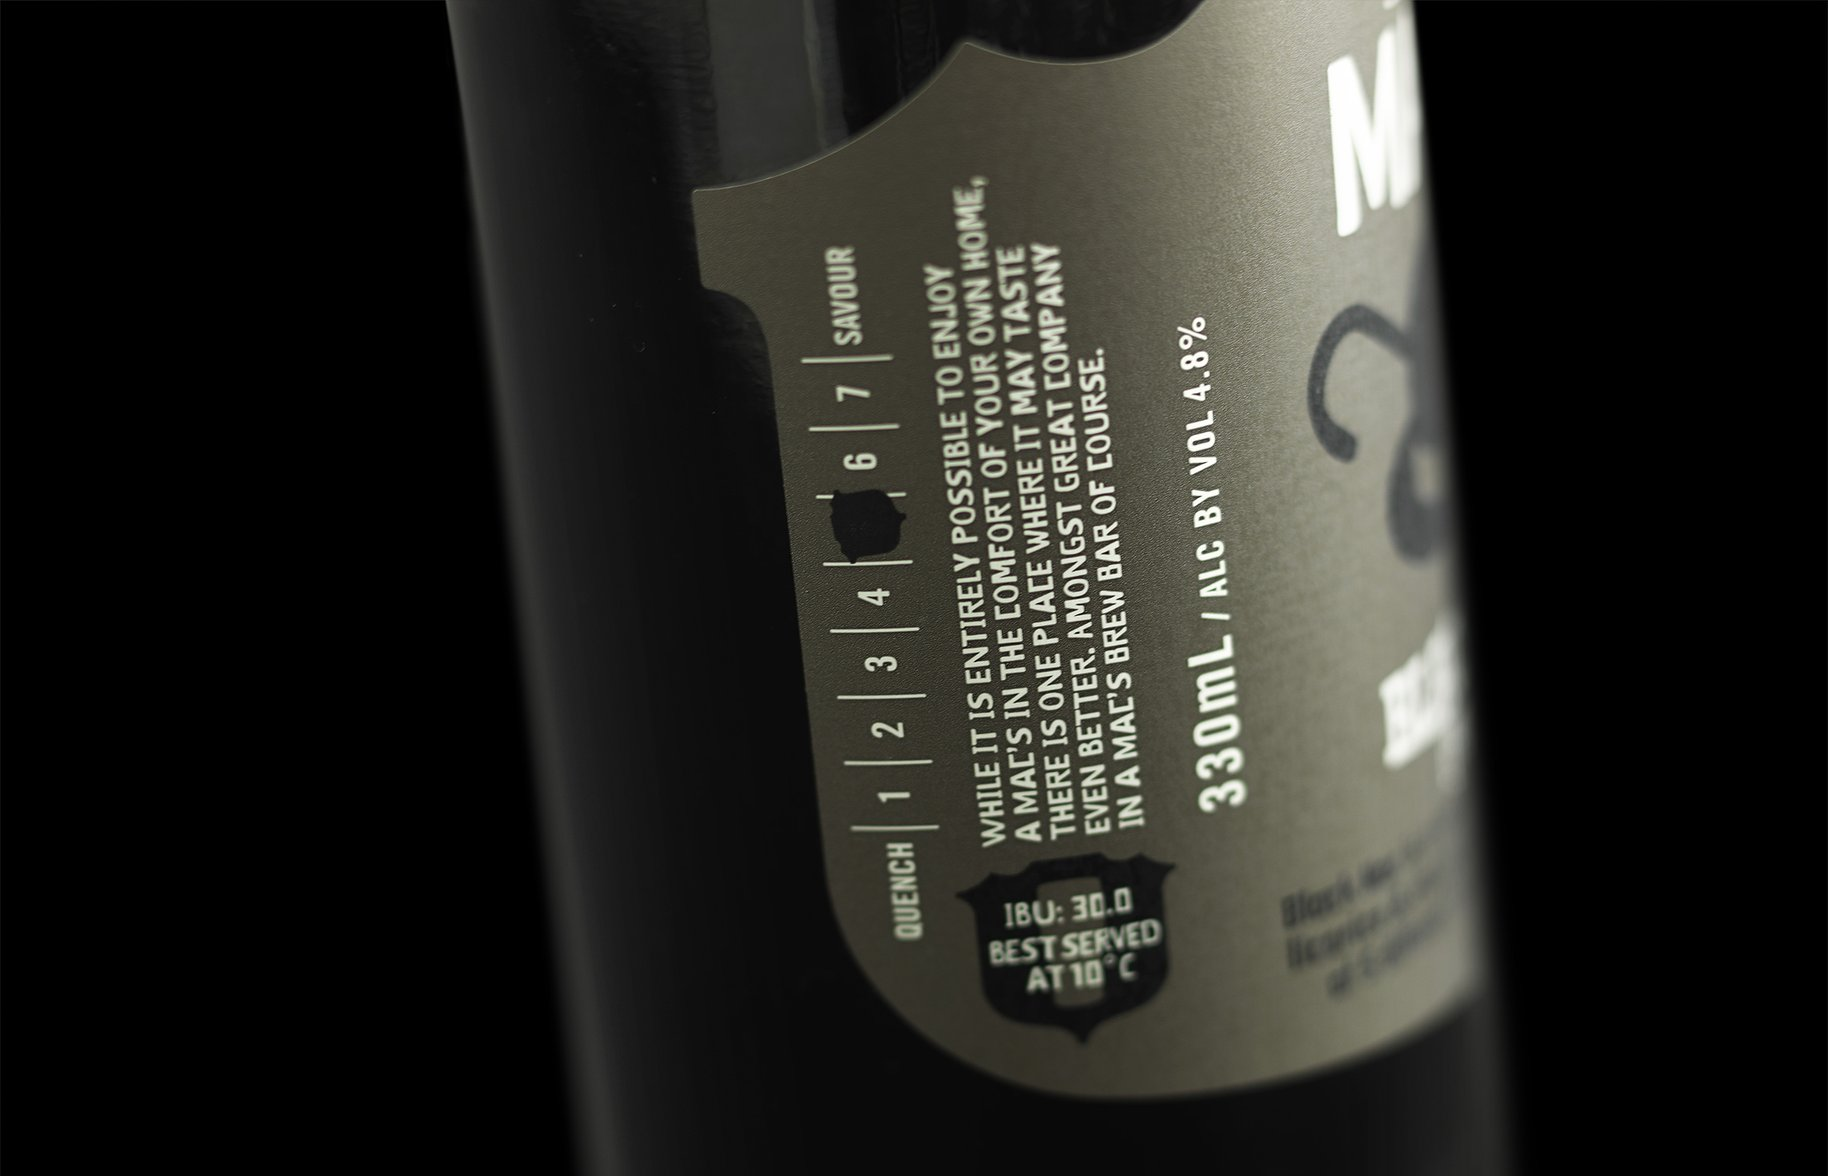 Macs Beer bottle details thirst scale packaging